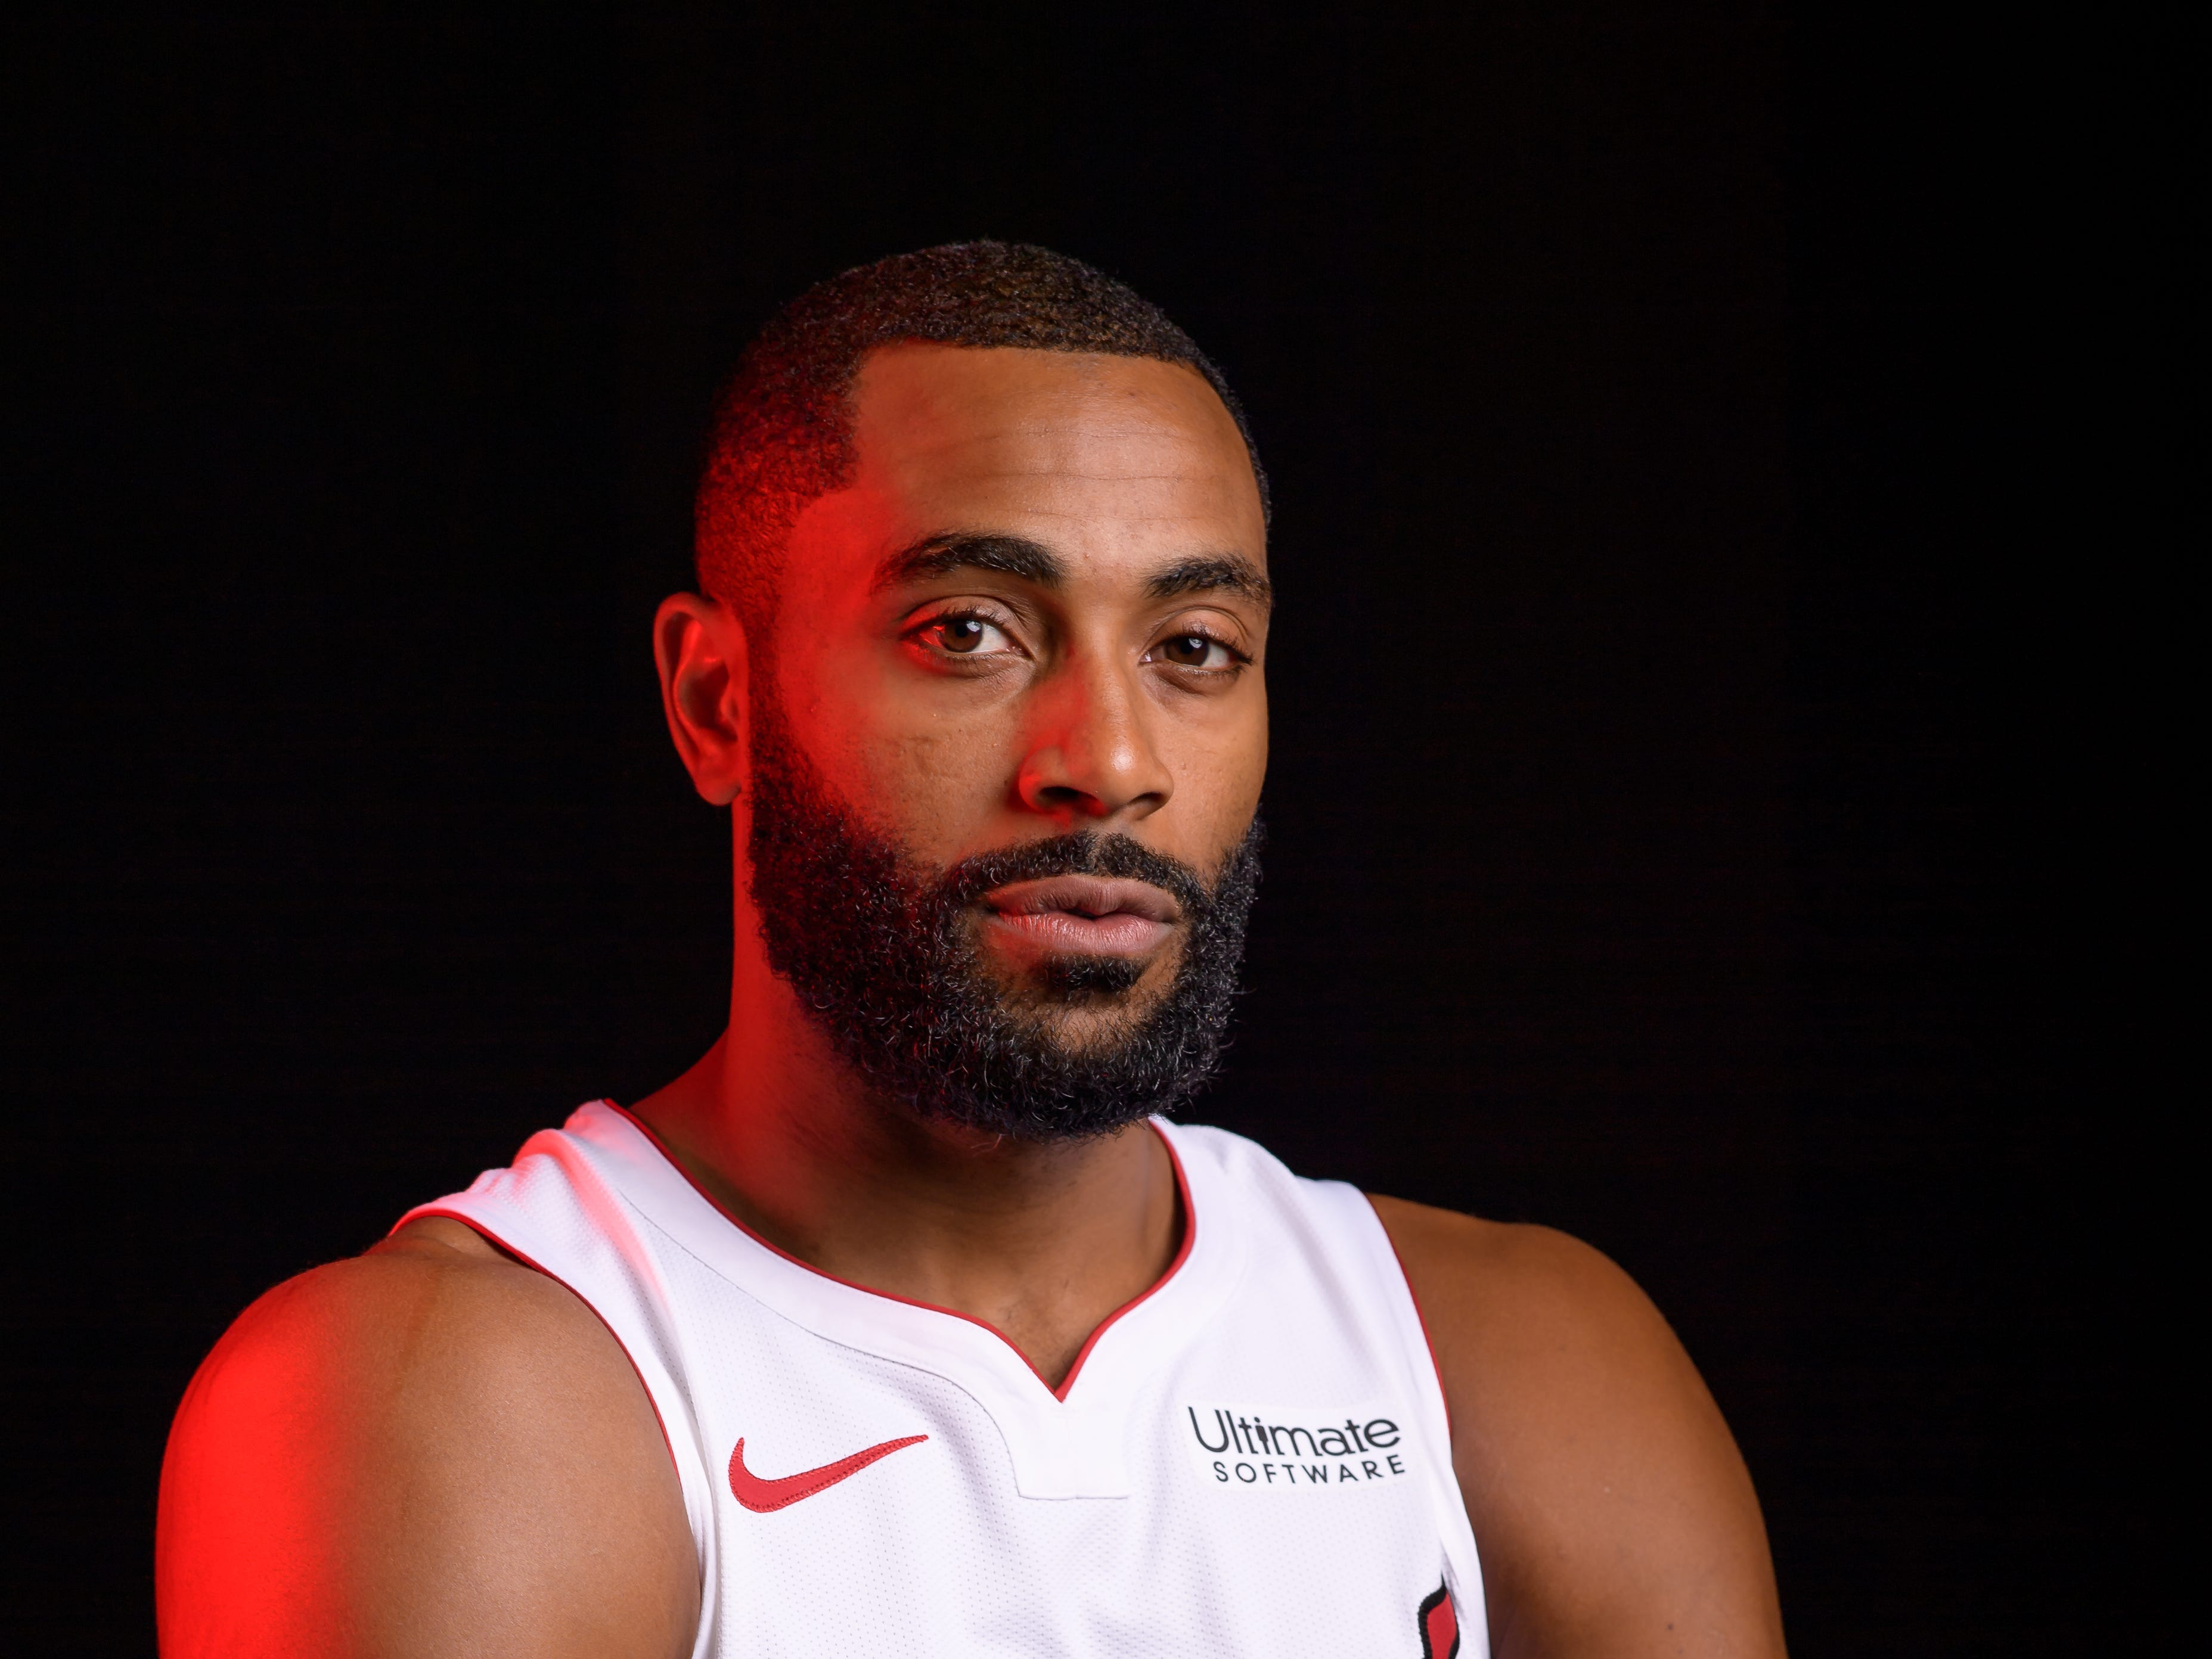 Wayne Ellington of the Miami Heat poses for pictures on media day on Sept. 24, 2018.